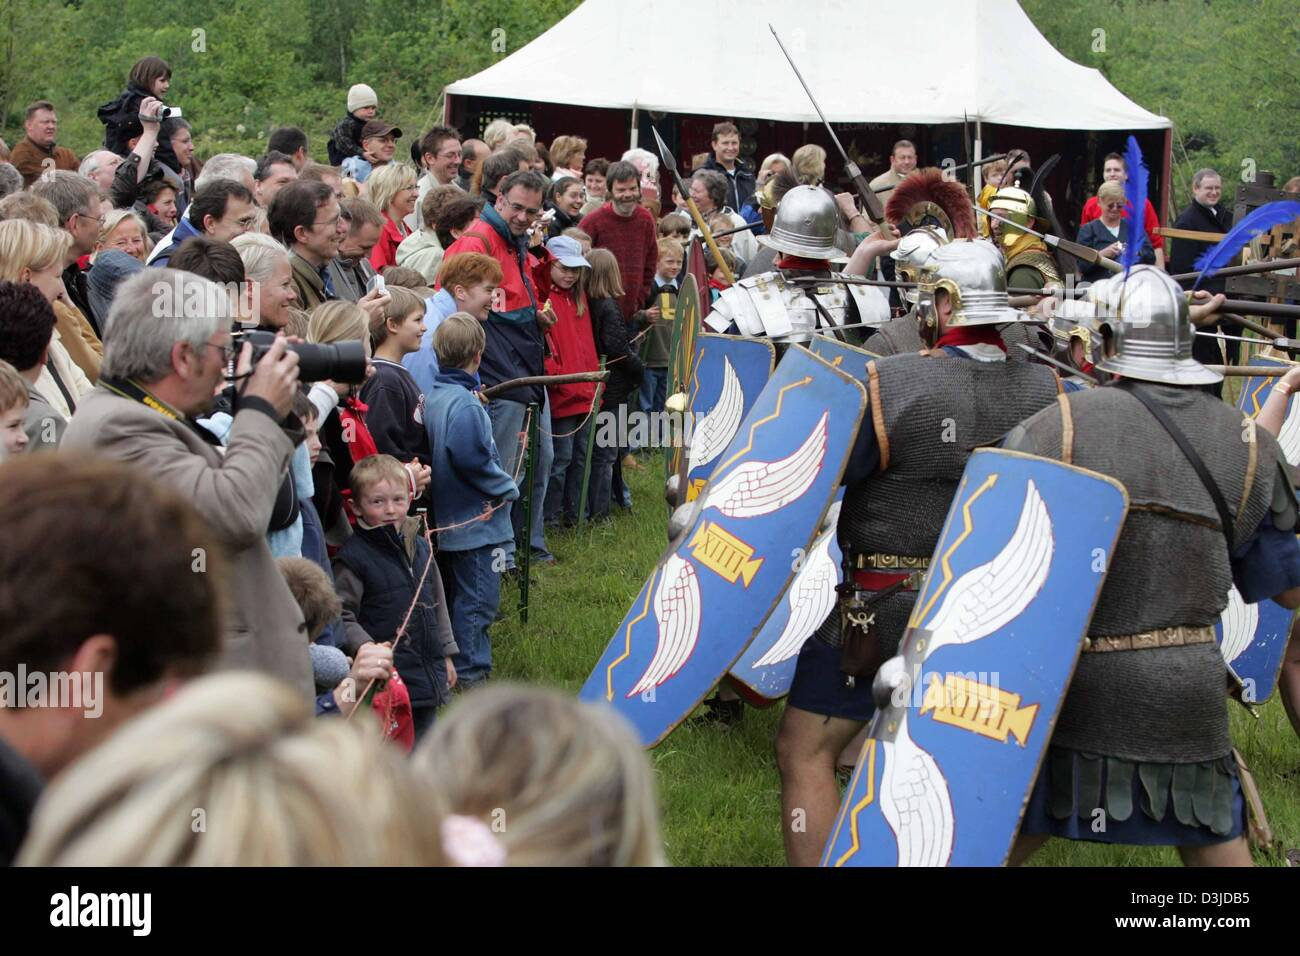 Members of the English 'Roman Military Research Society' practice with their weapons and menace the spectators - Stock Image